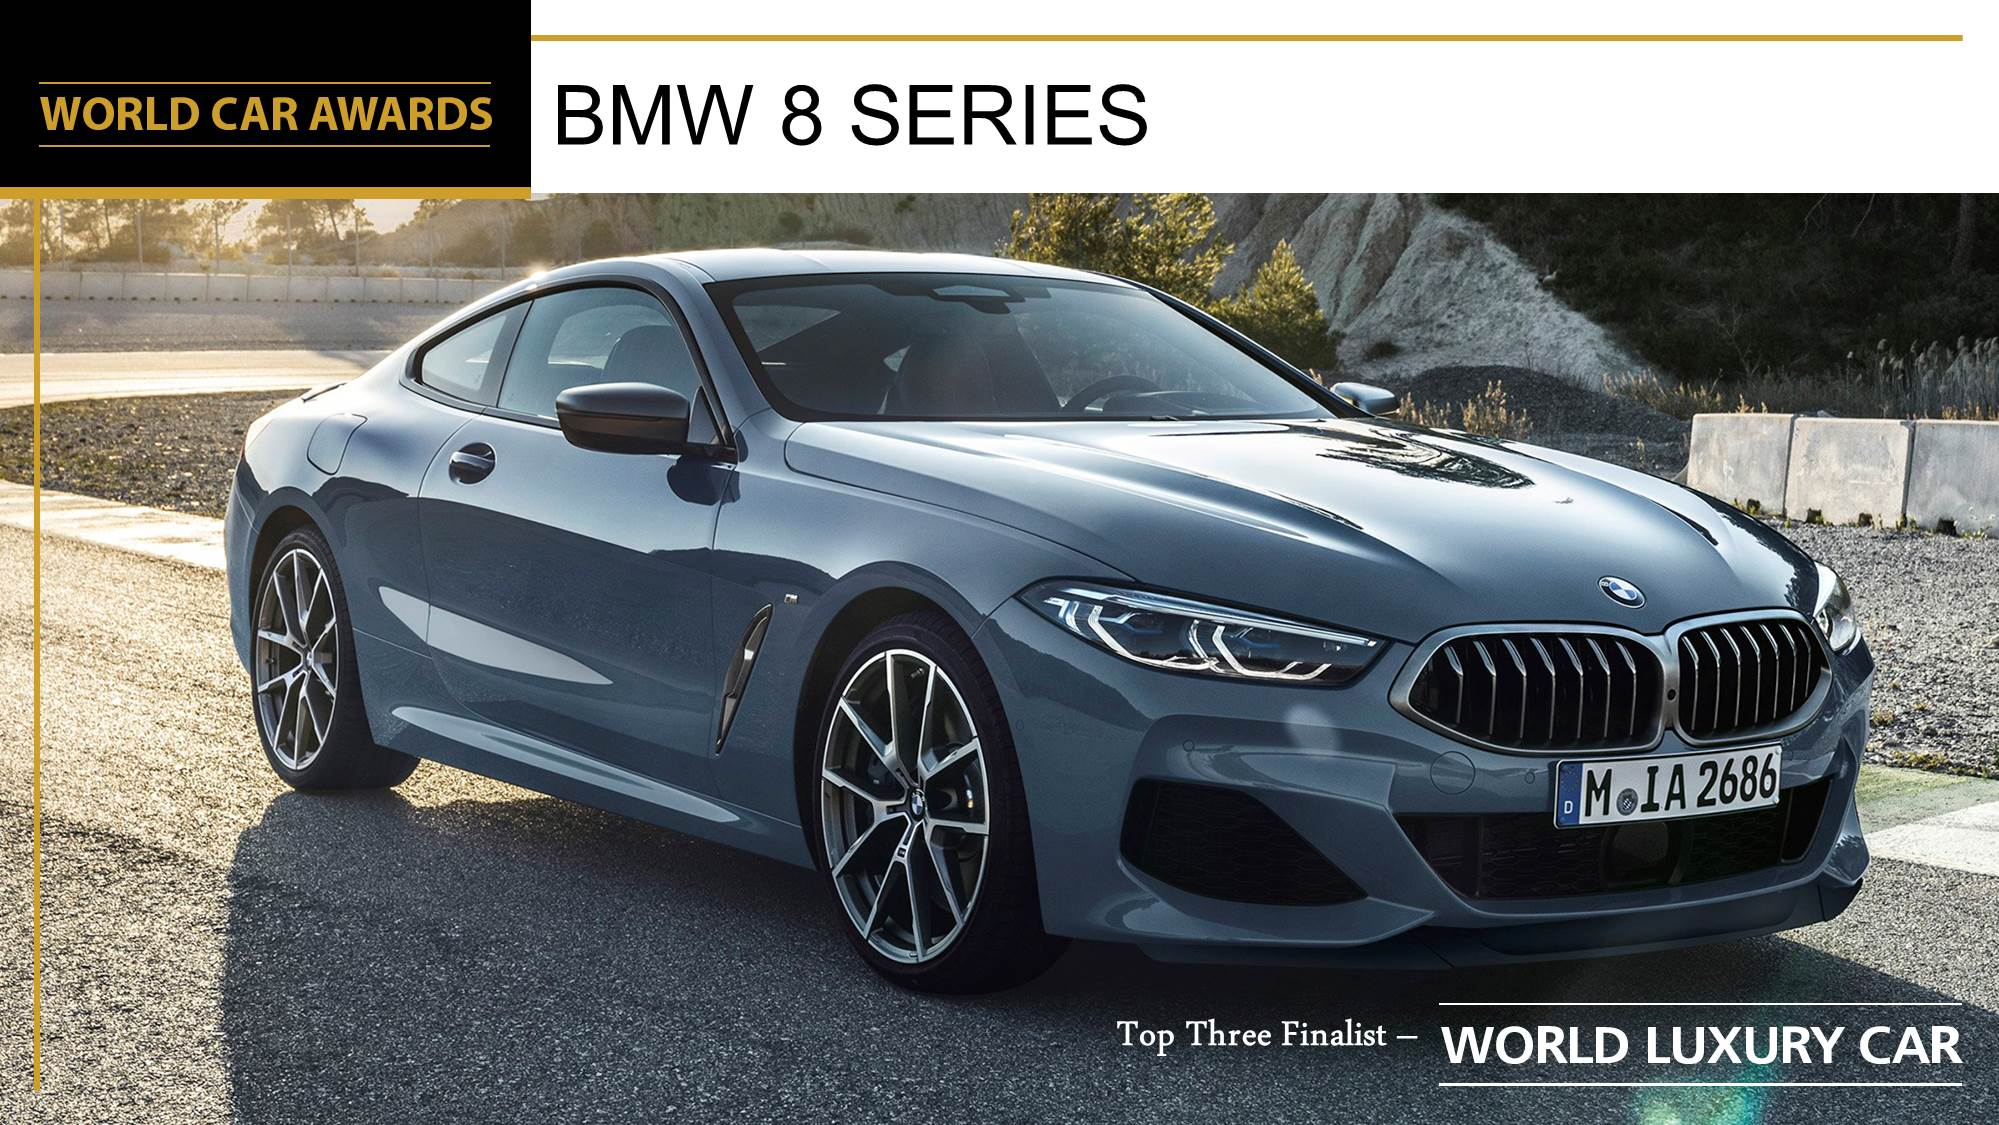 BMW 8 Series World Car of the Year